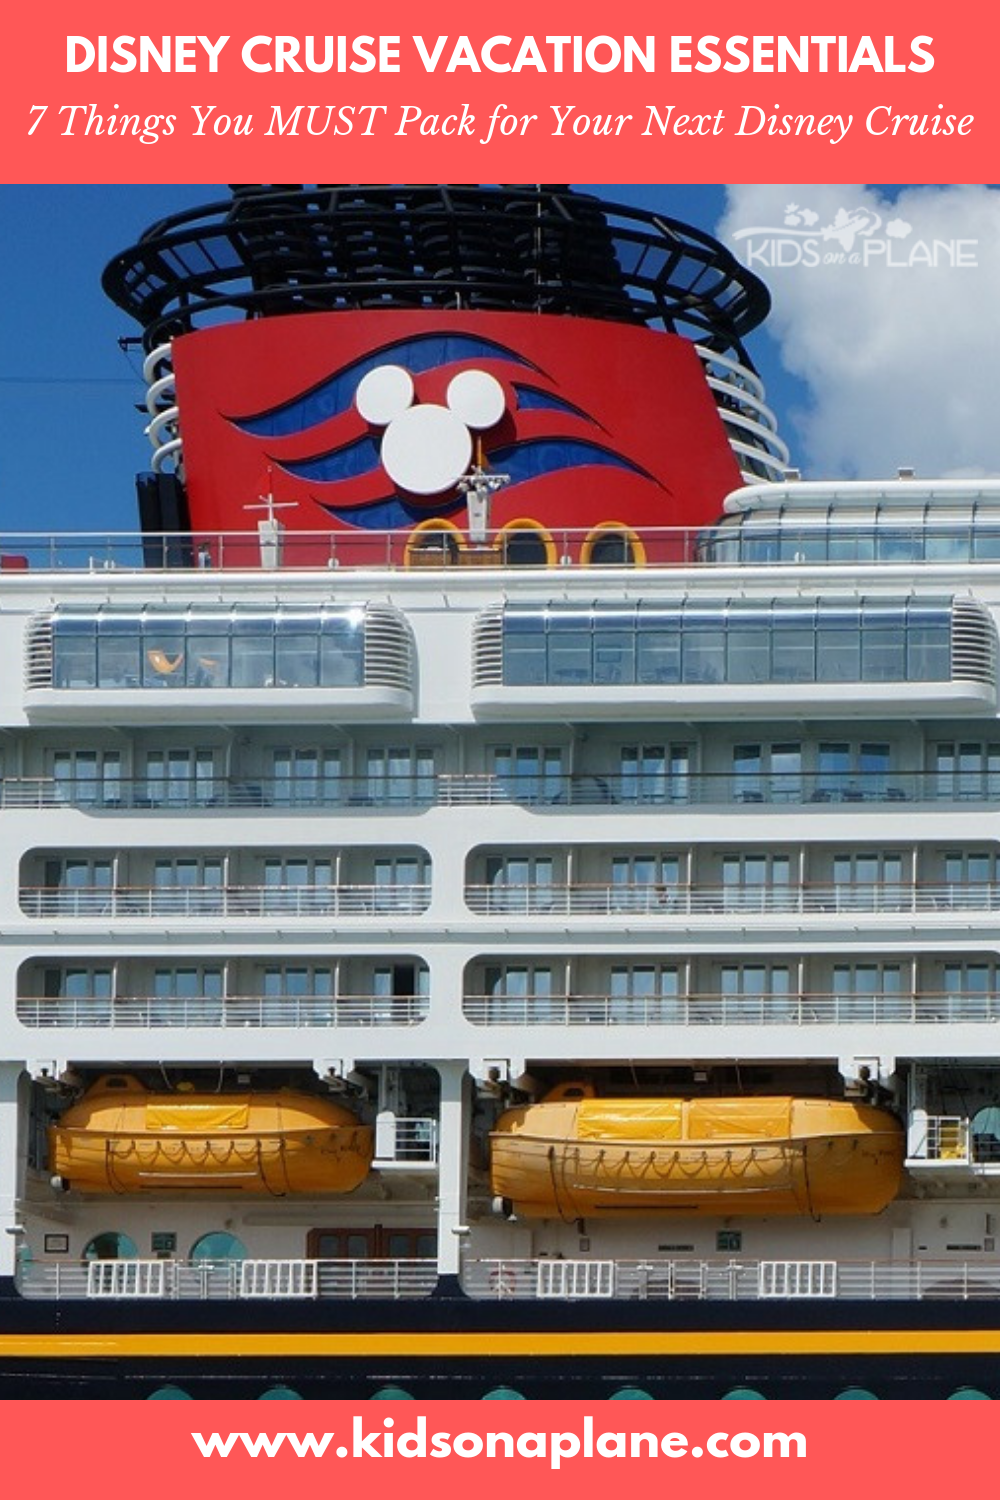 What to Pack for a Disney Cruise with Kids - 7 MUST PACK ITEMS